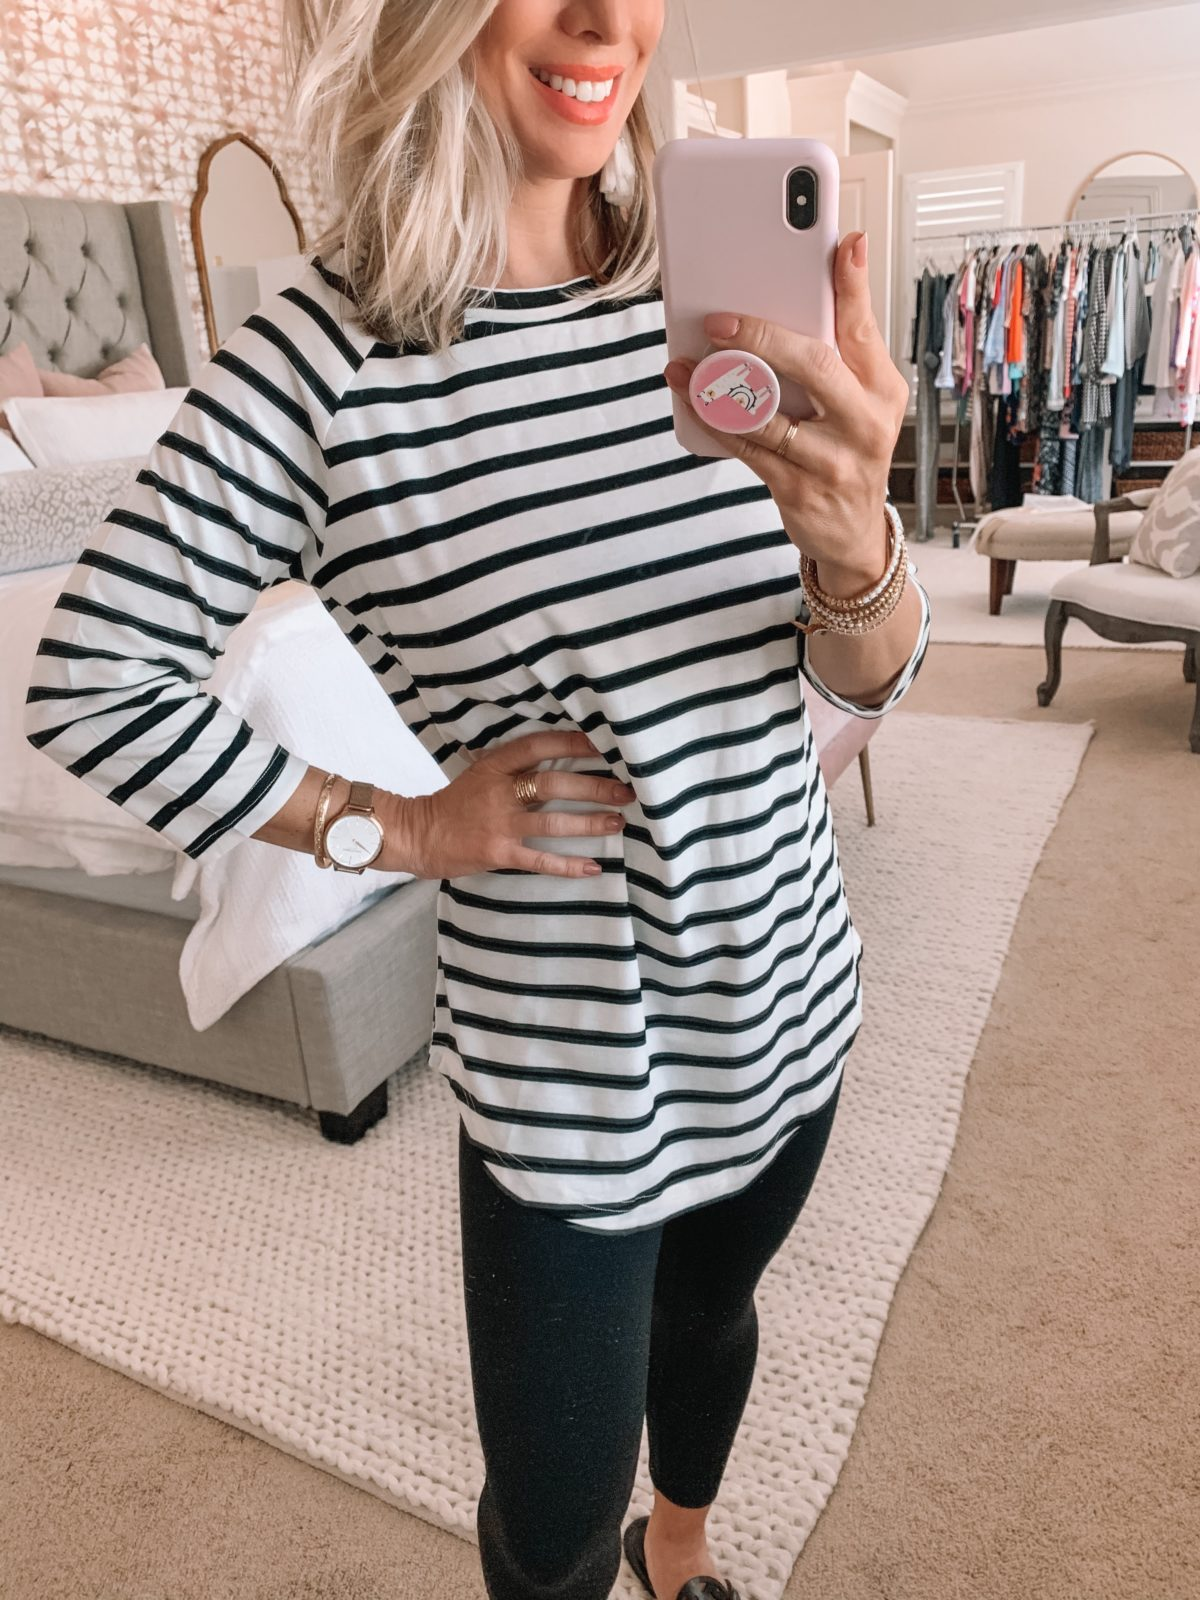 Amazon Fashion Finds, Striped Tunic Top, Leggings, Sandals